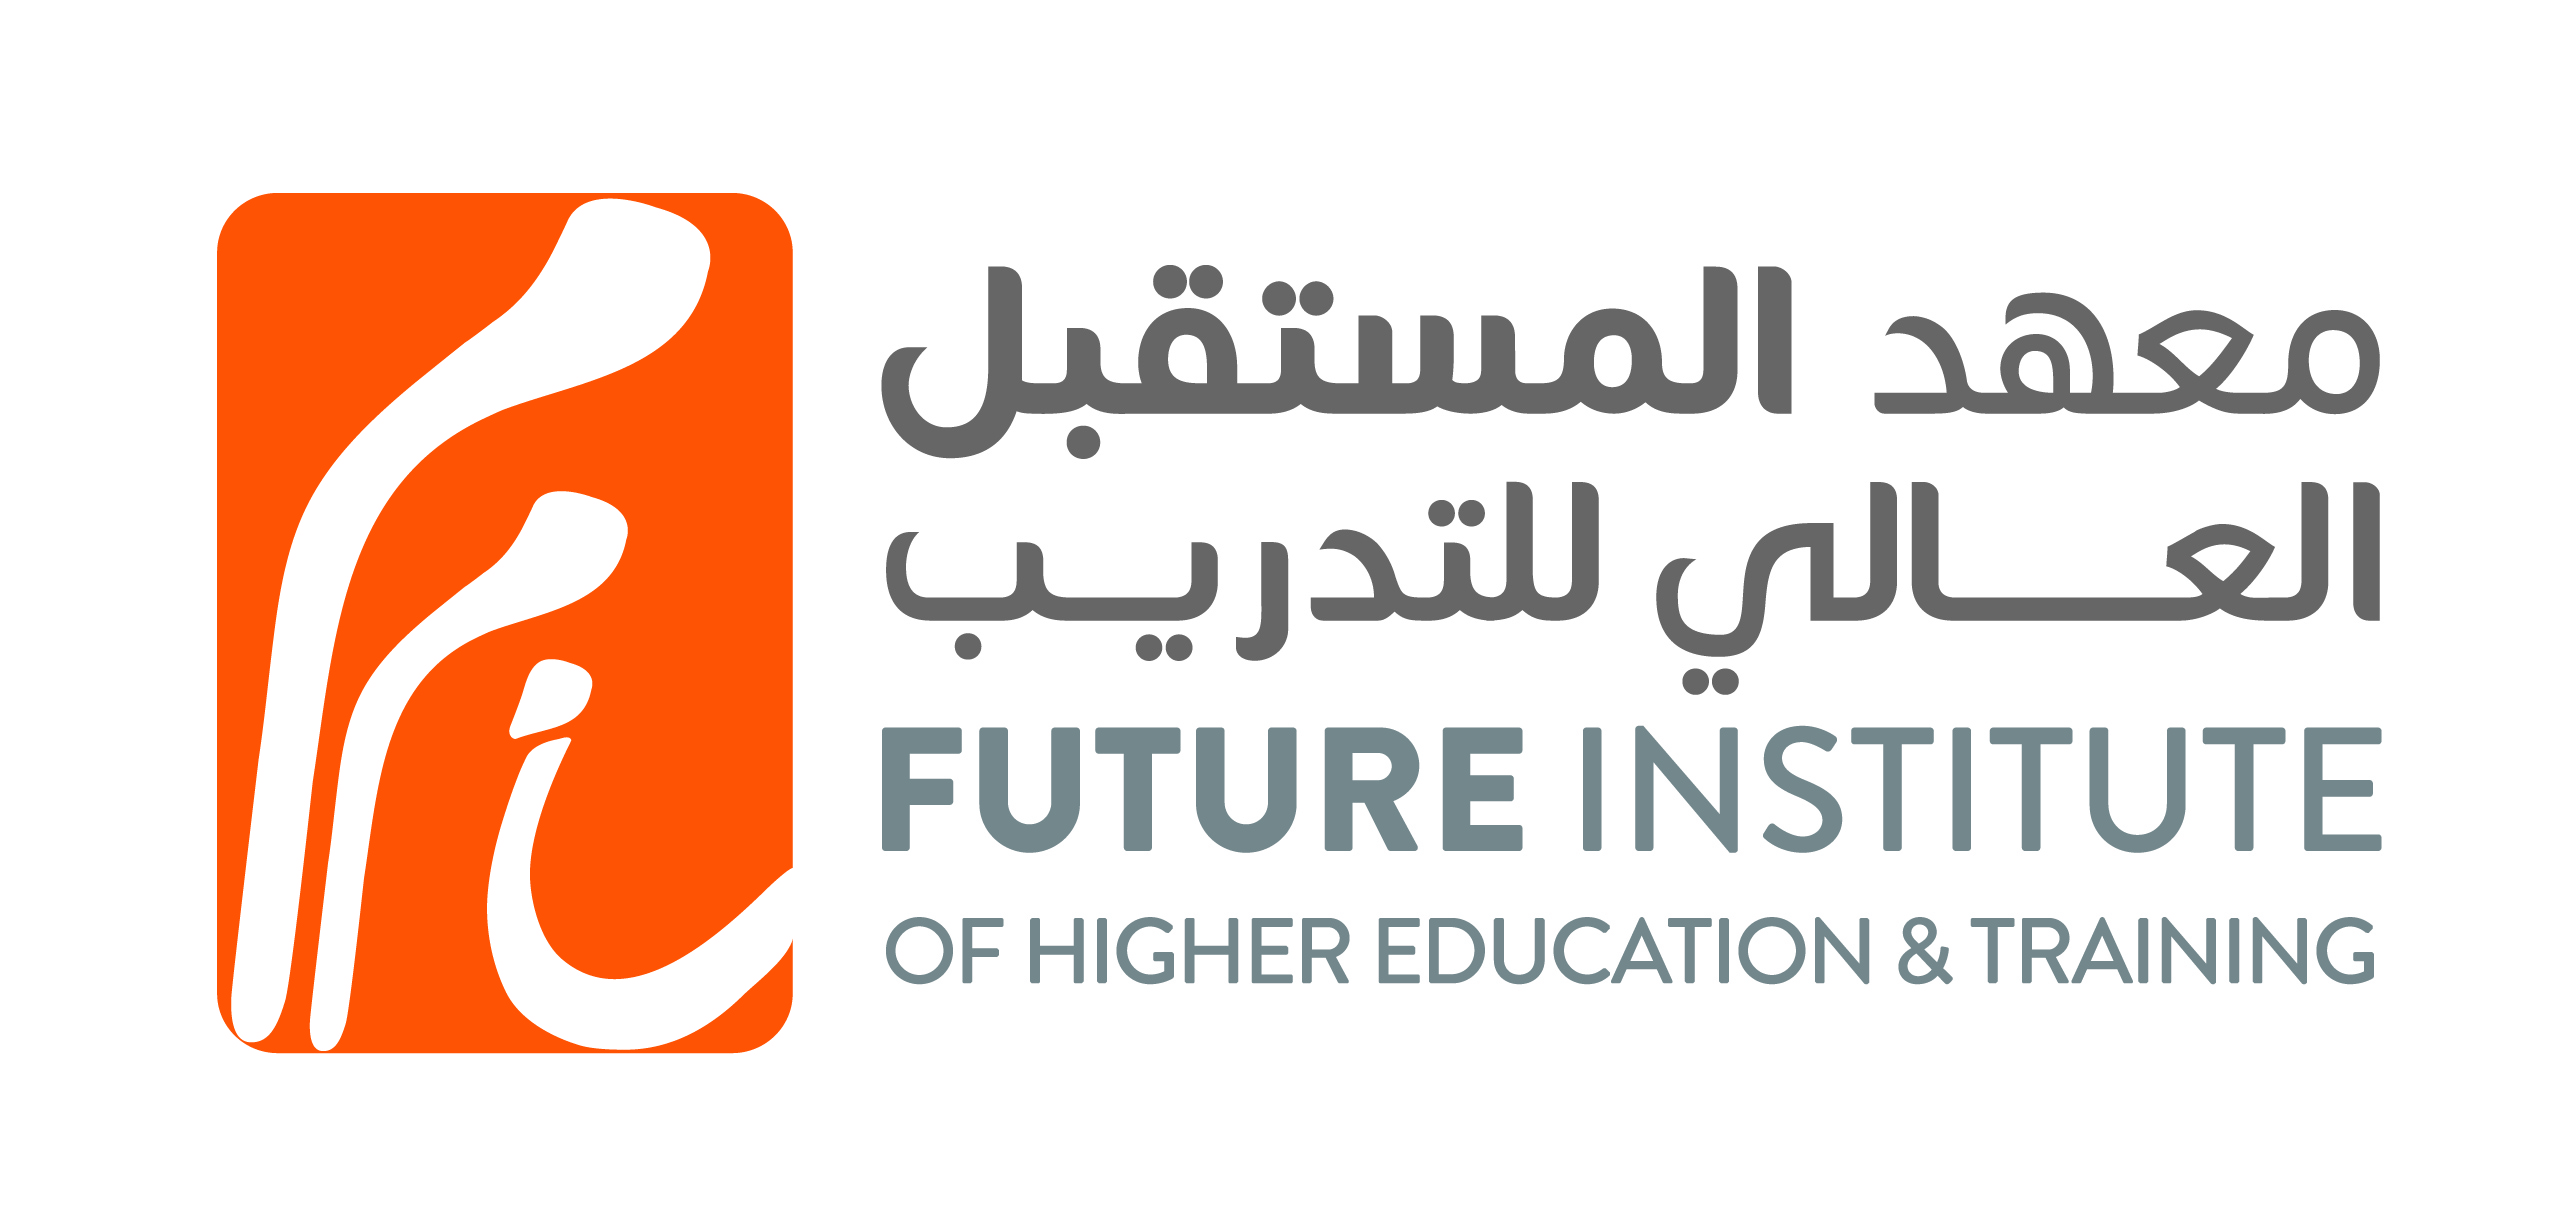 2 Years Fashion Design Diploma In Al Andalus Jeddah From Future Institute Of Higher Education Training For Ladies Laimoon Com